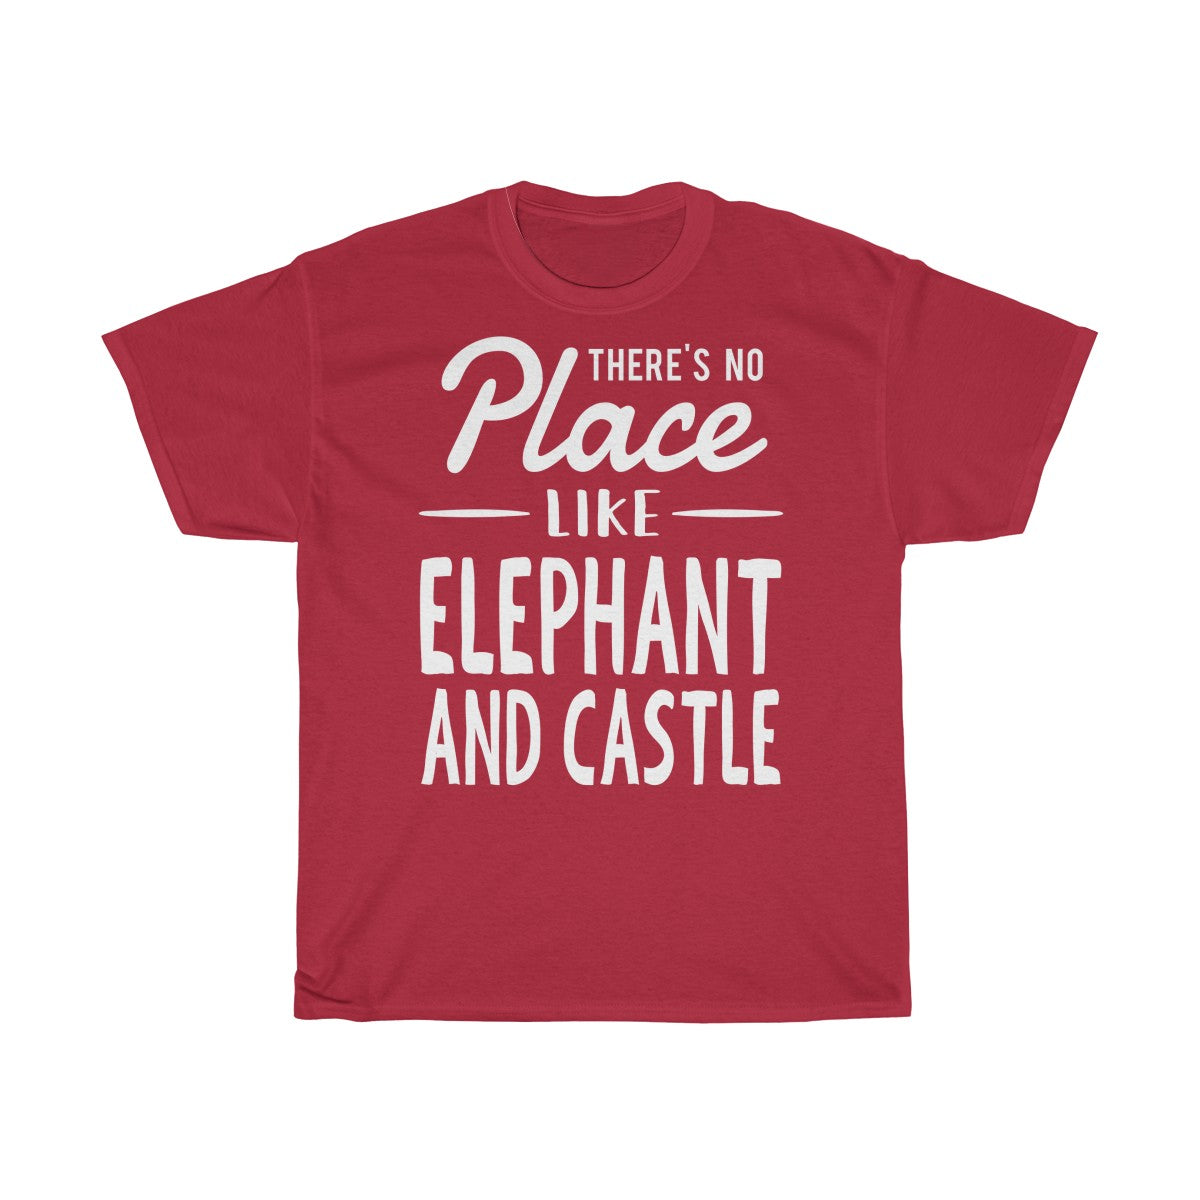 There's No Place Like Elephant and Castle Unisex T-Shirt